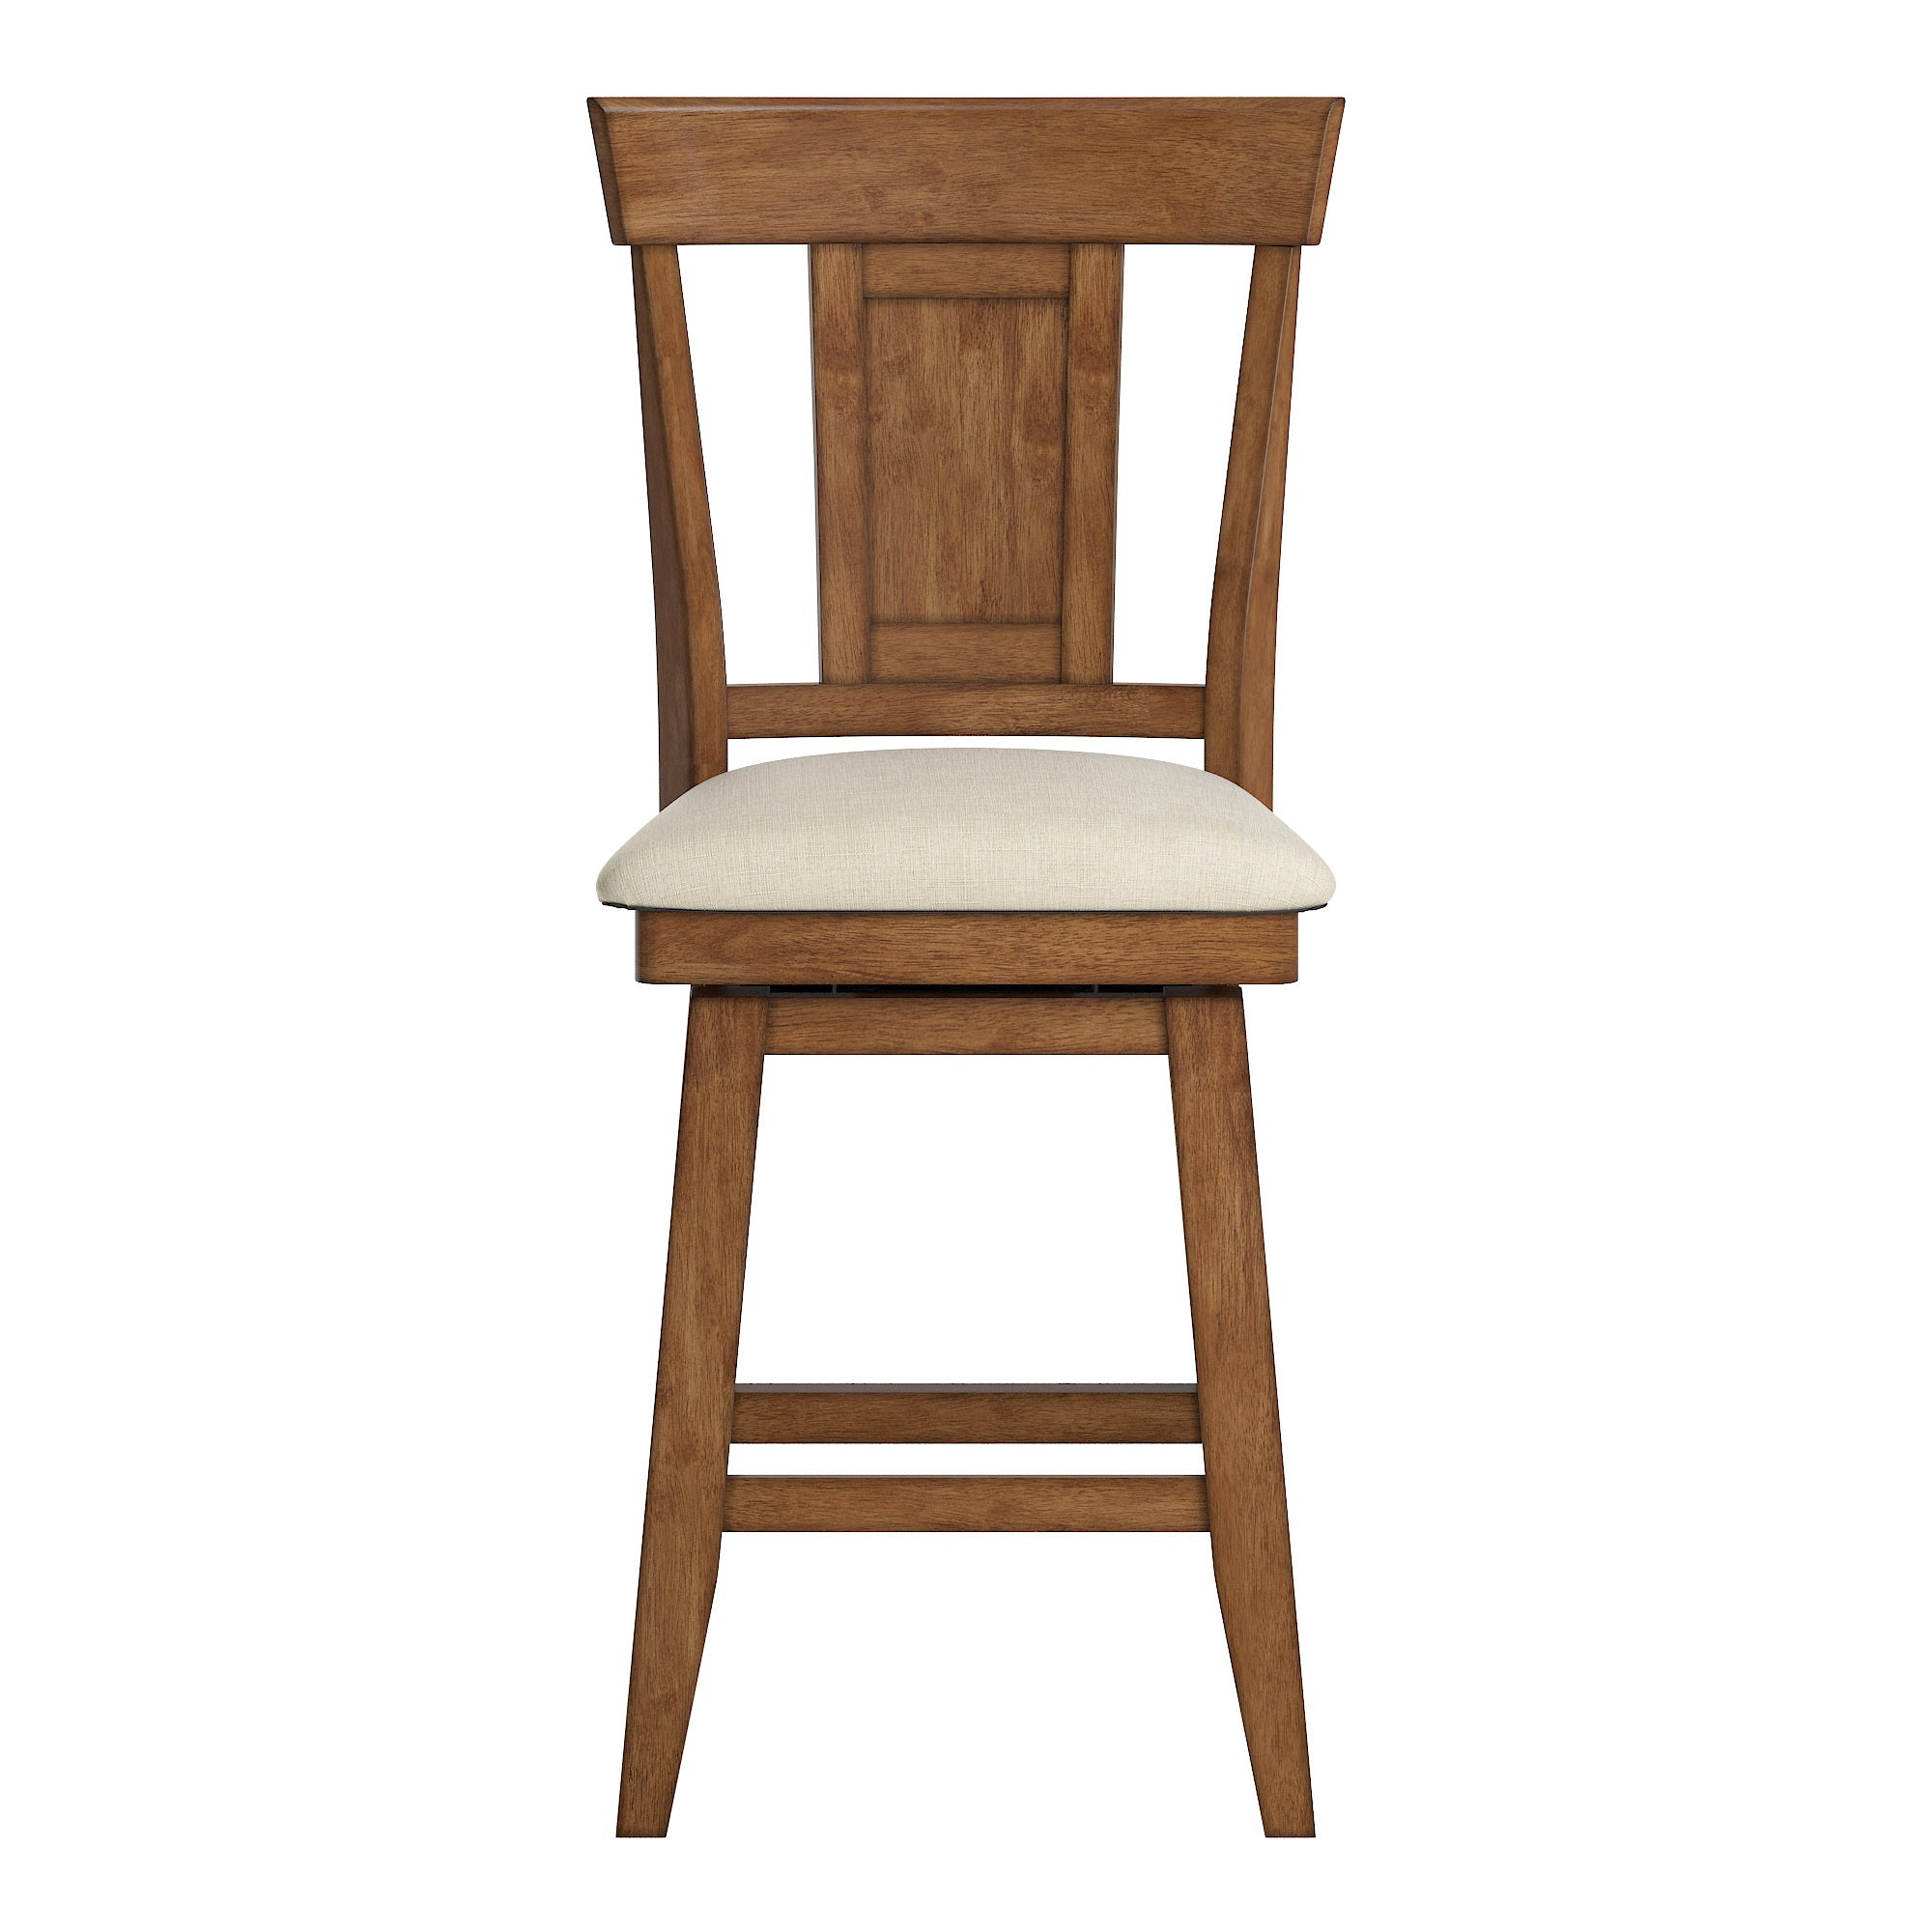 Panel Back Counter Height Wood Swivel Chair - Oak Finish